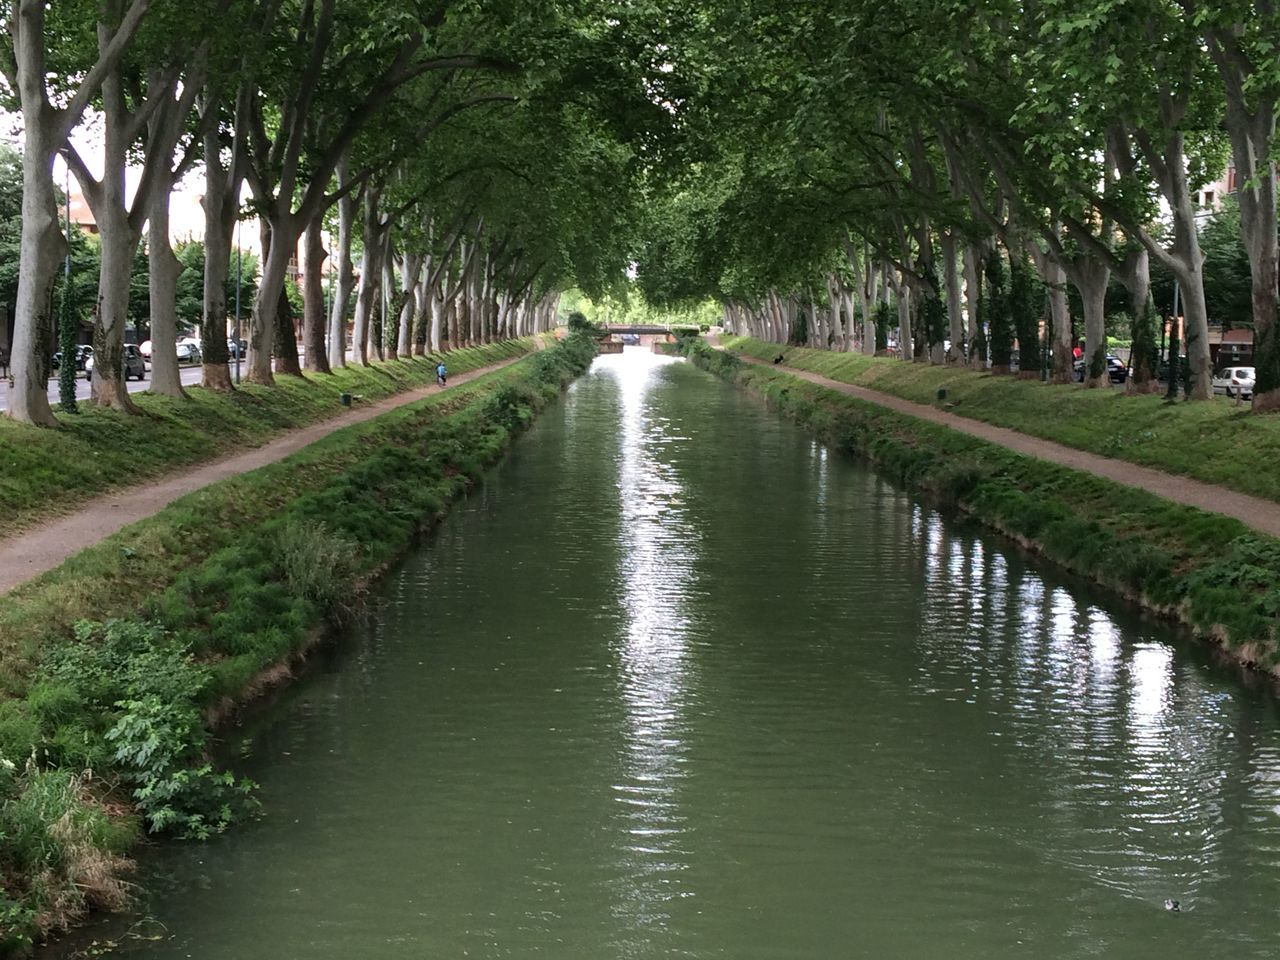 Toulouse Canal De Brienne France Trees Walking Around The Great Outdoors - 2015 EyeEm Awards Water Reflections Urban Geometry Taking Photos Path